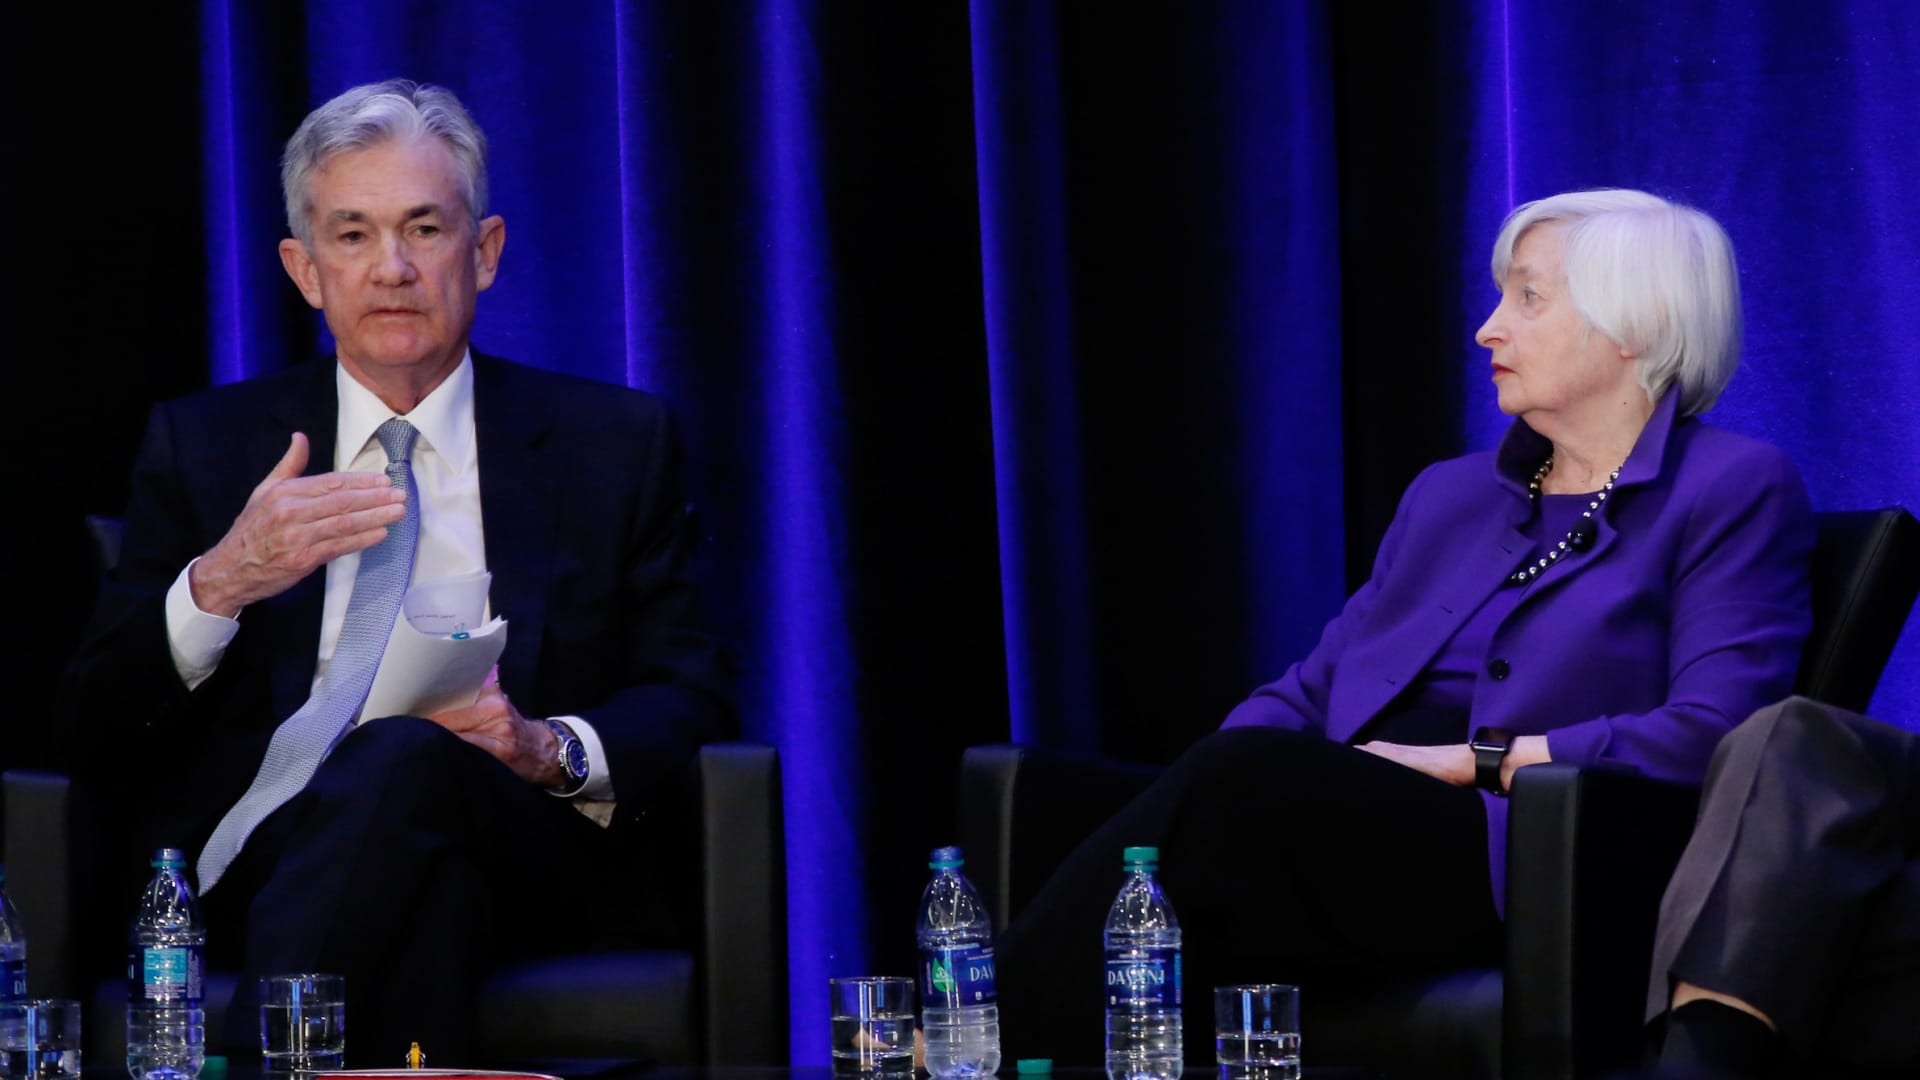 U.S. Federal Reserve Chairman Jerome Powell, former Fed chairs Janet Yellen speak during a panel discussion at the American Economic Association/Allied Social Science Association (ASSA) 2019 meeting in Atlanta, Georgia, U.S., January 4, 2019.